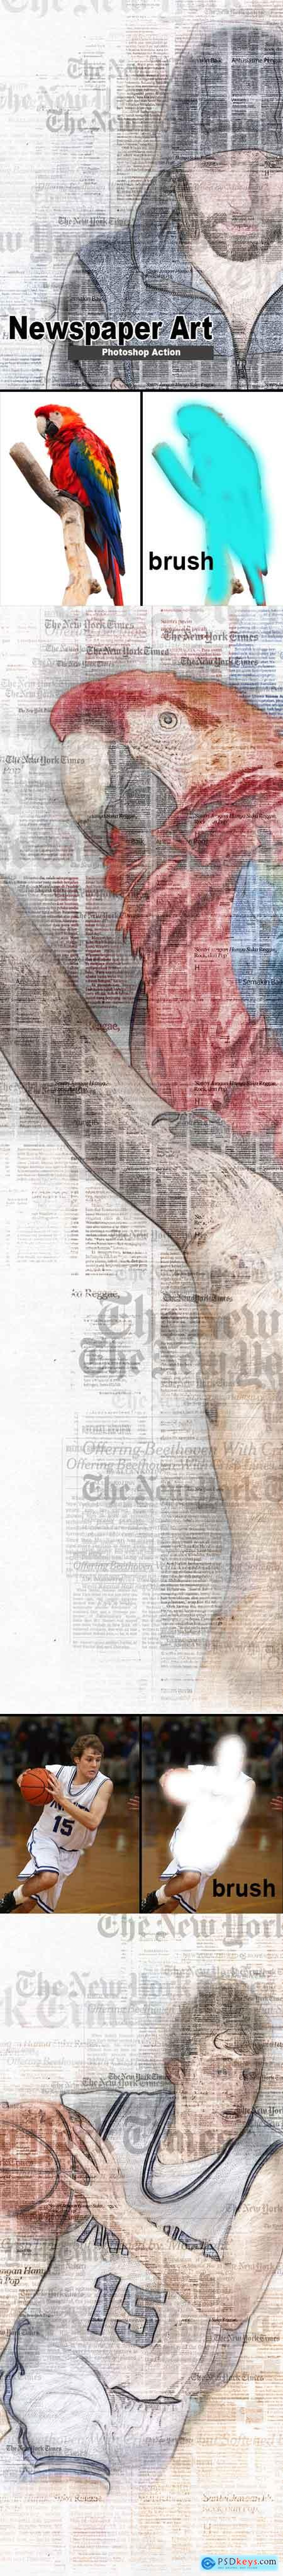 Graphicriver Amazing Newspaper Art Photoshop Action